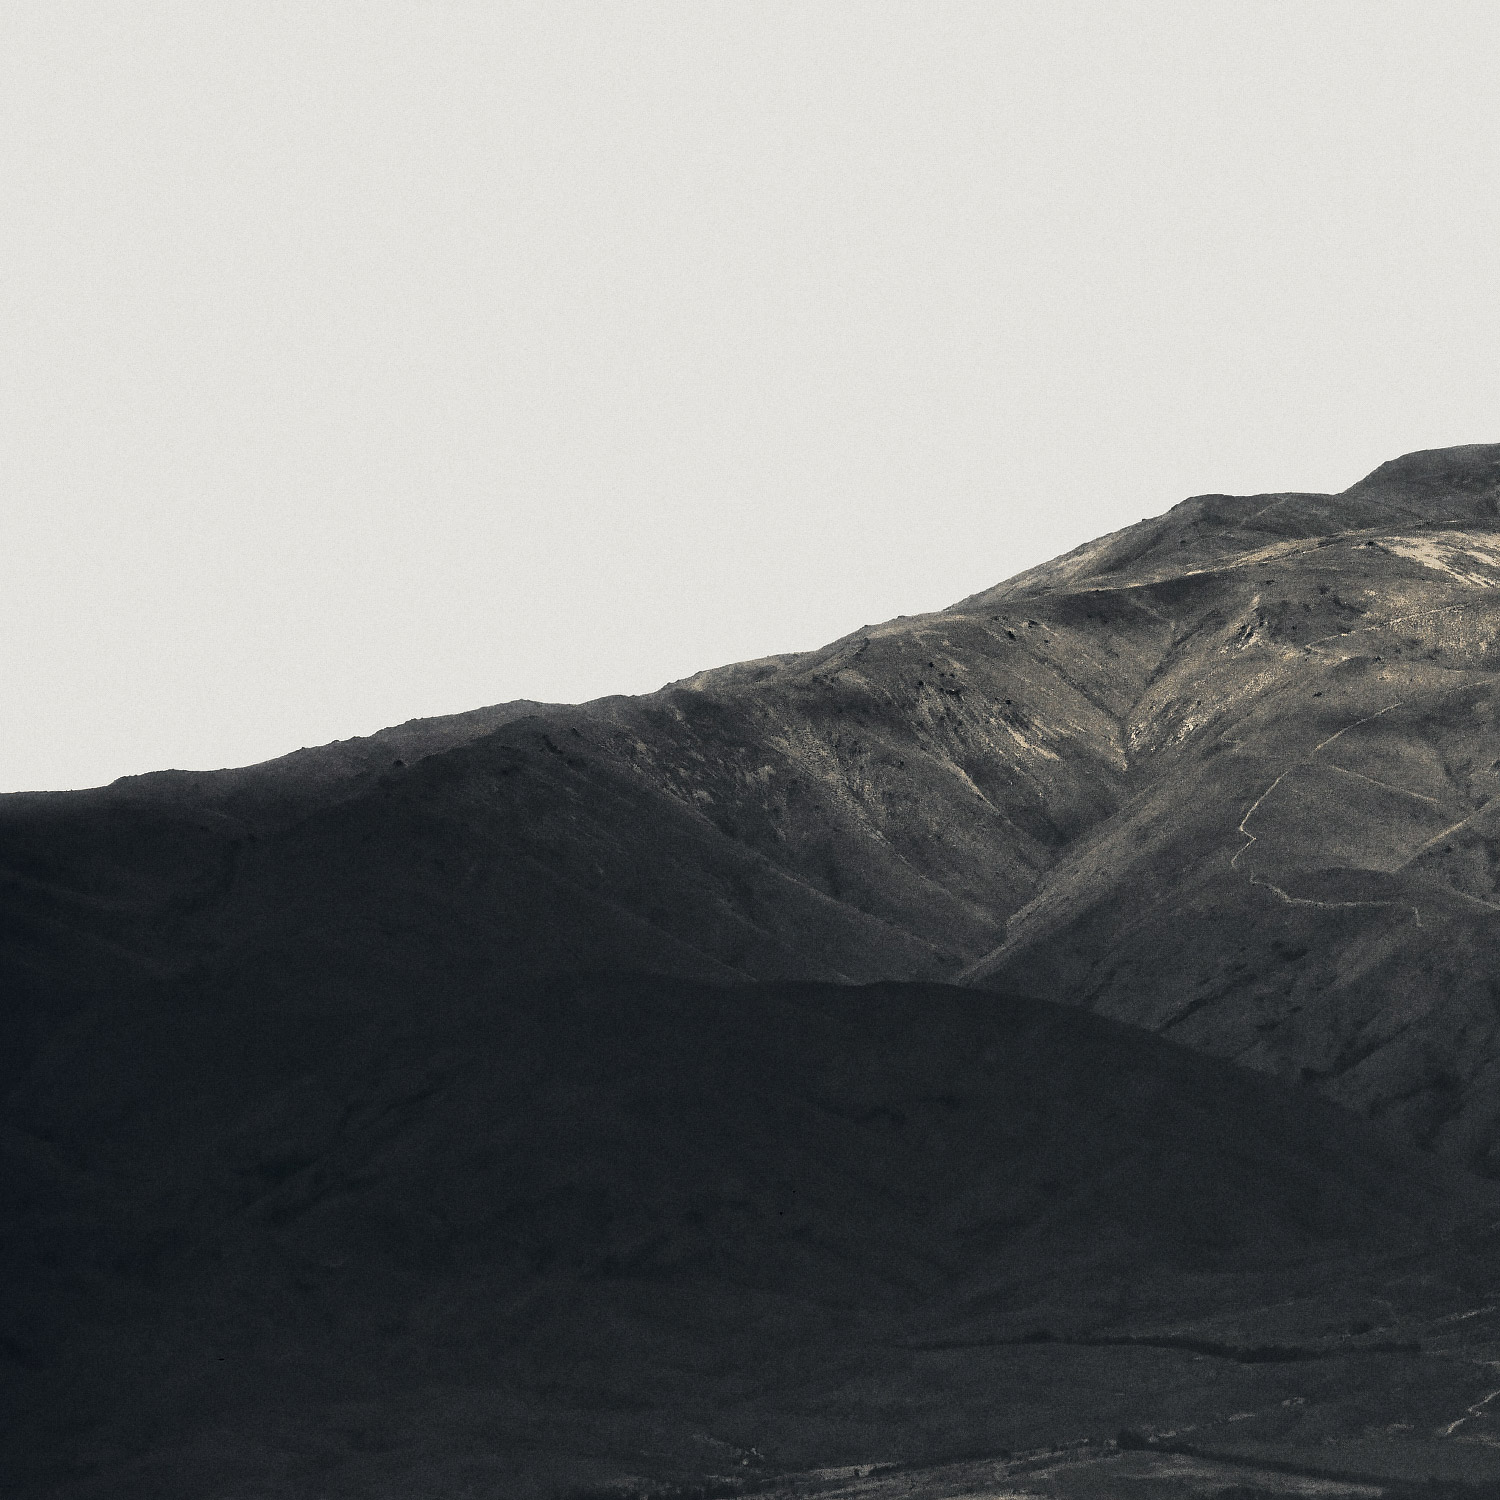 solely mountains #1/2 (detail)